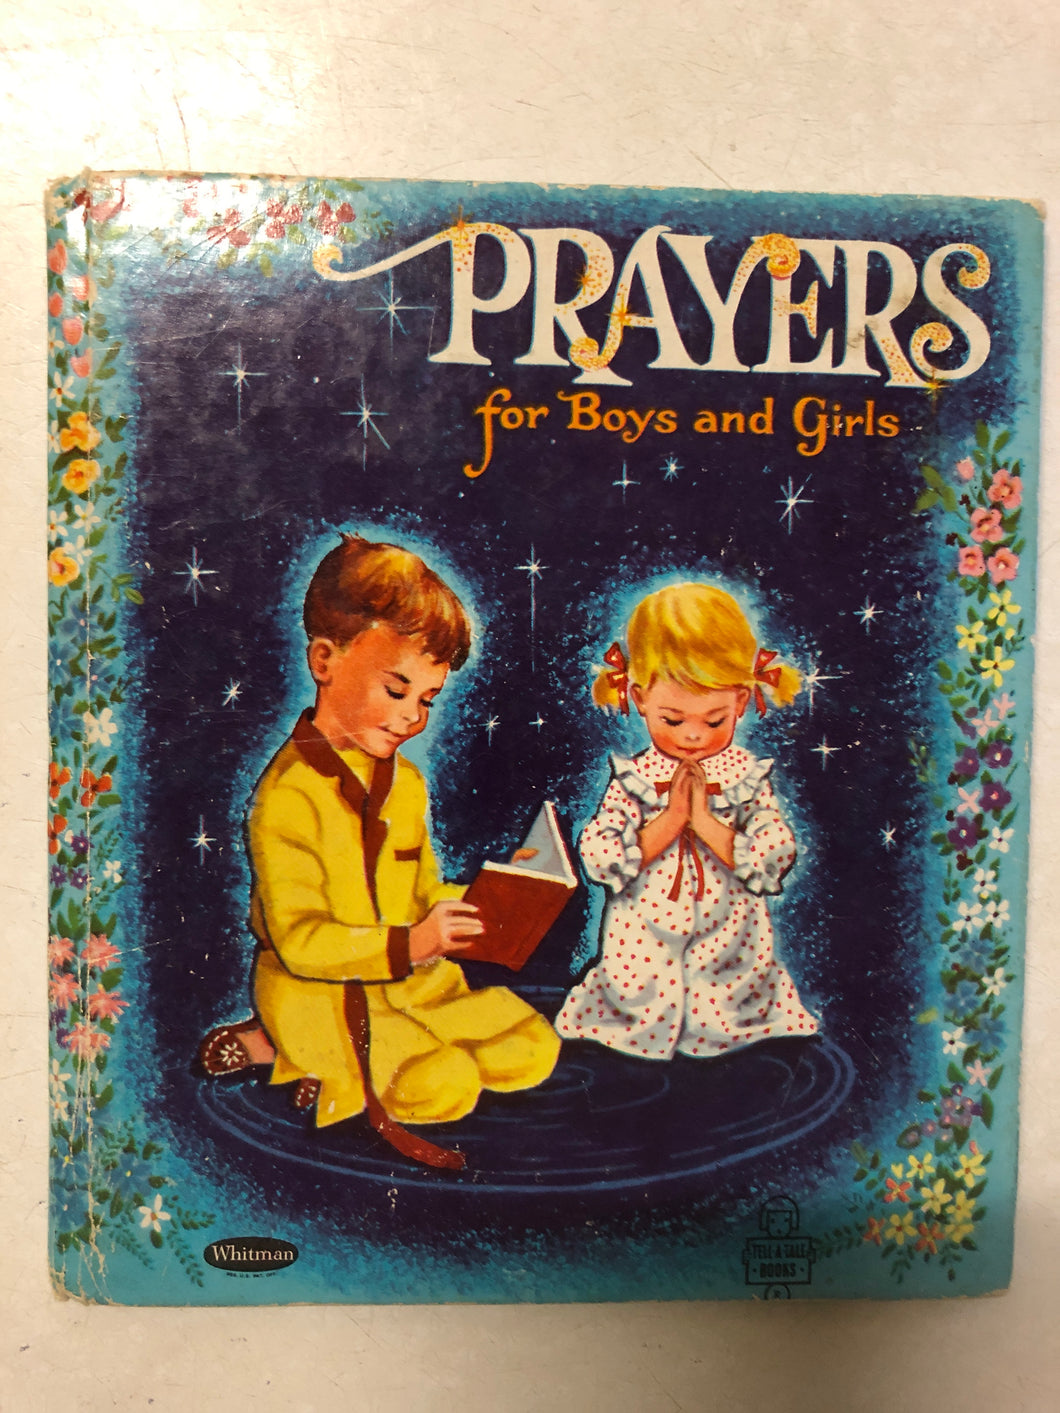 Prayers for Boys and Girls - Slick Cat Books